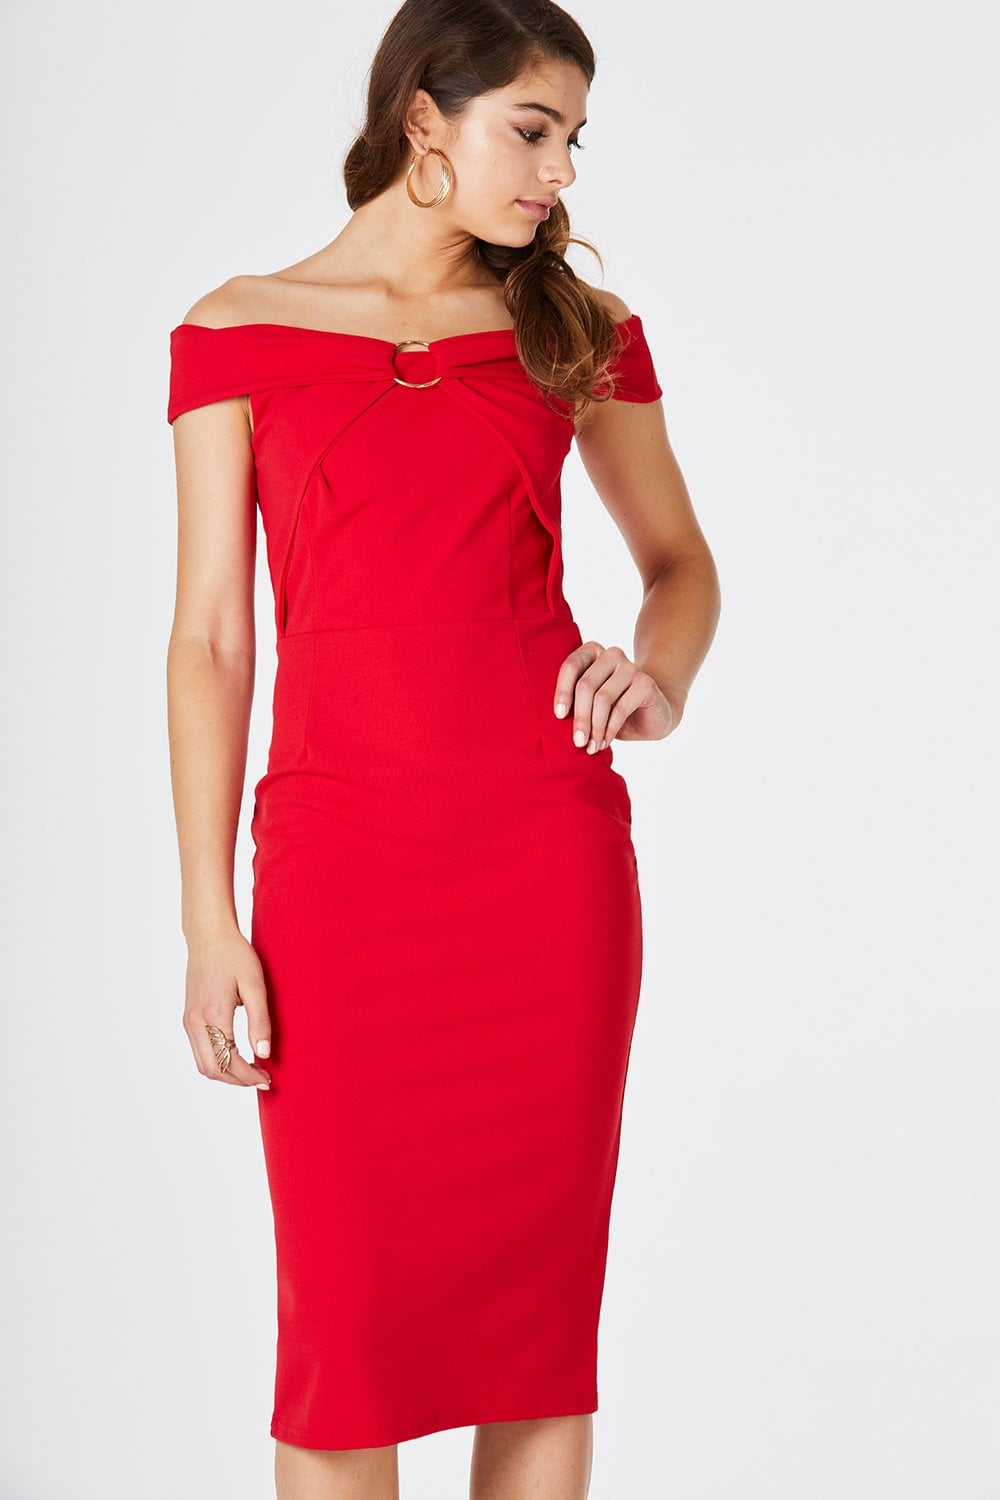 5bbc73fc5fd Outlet Girls On Film Cosmo Red Bardot Midi Dress - Outlet Girls On Film  from Little Mistress UK